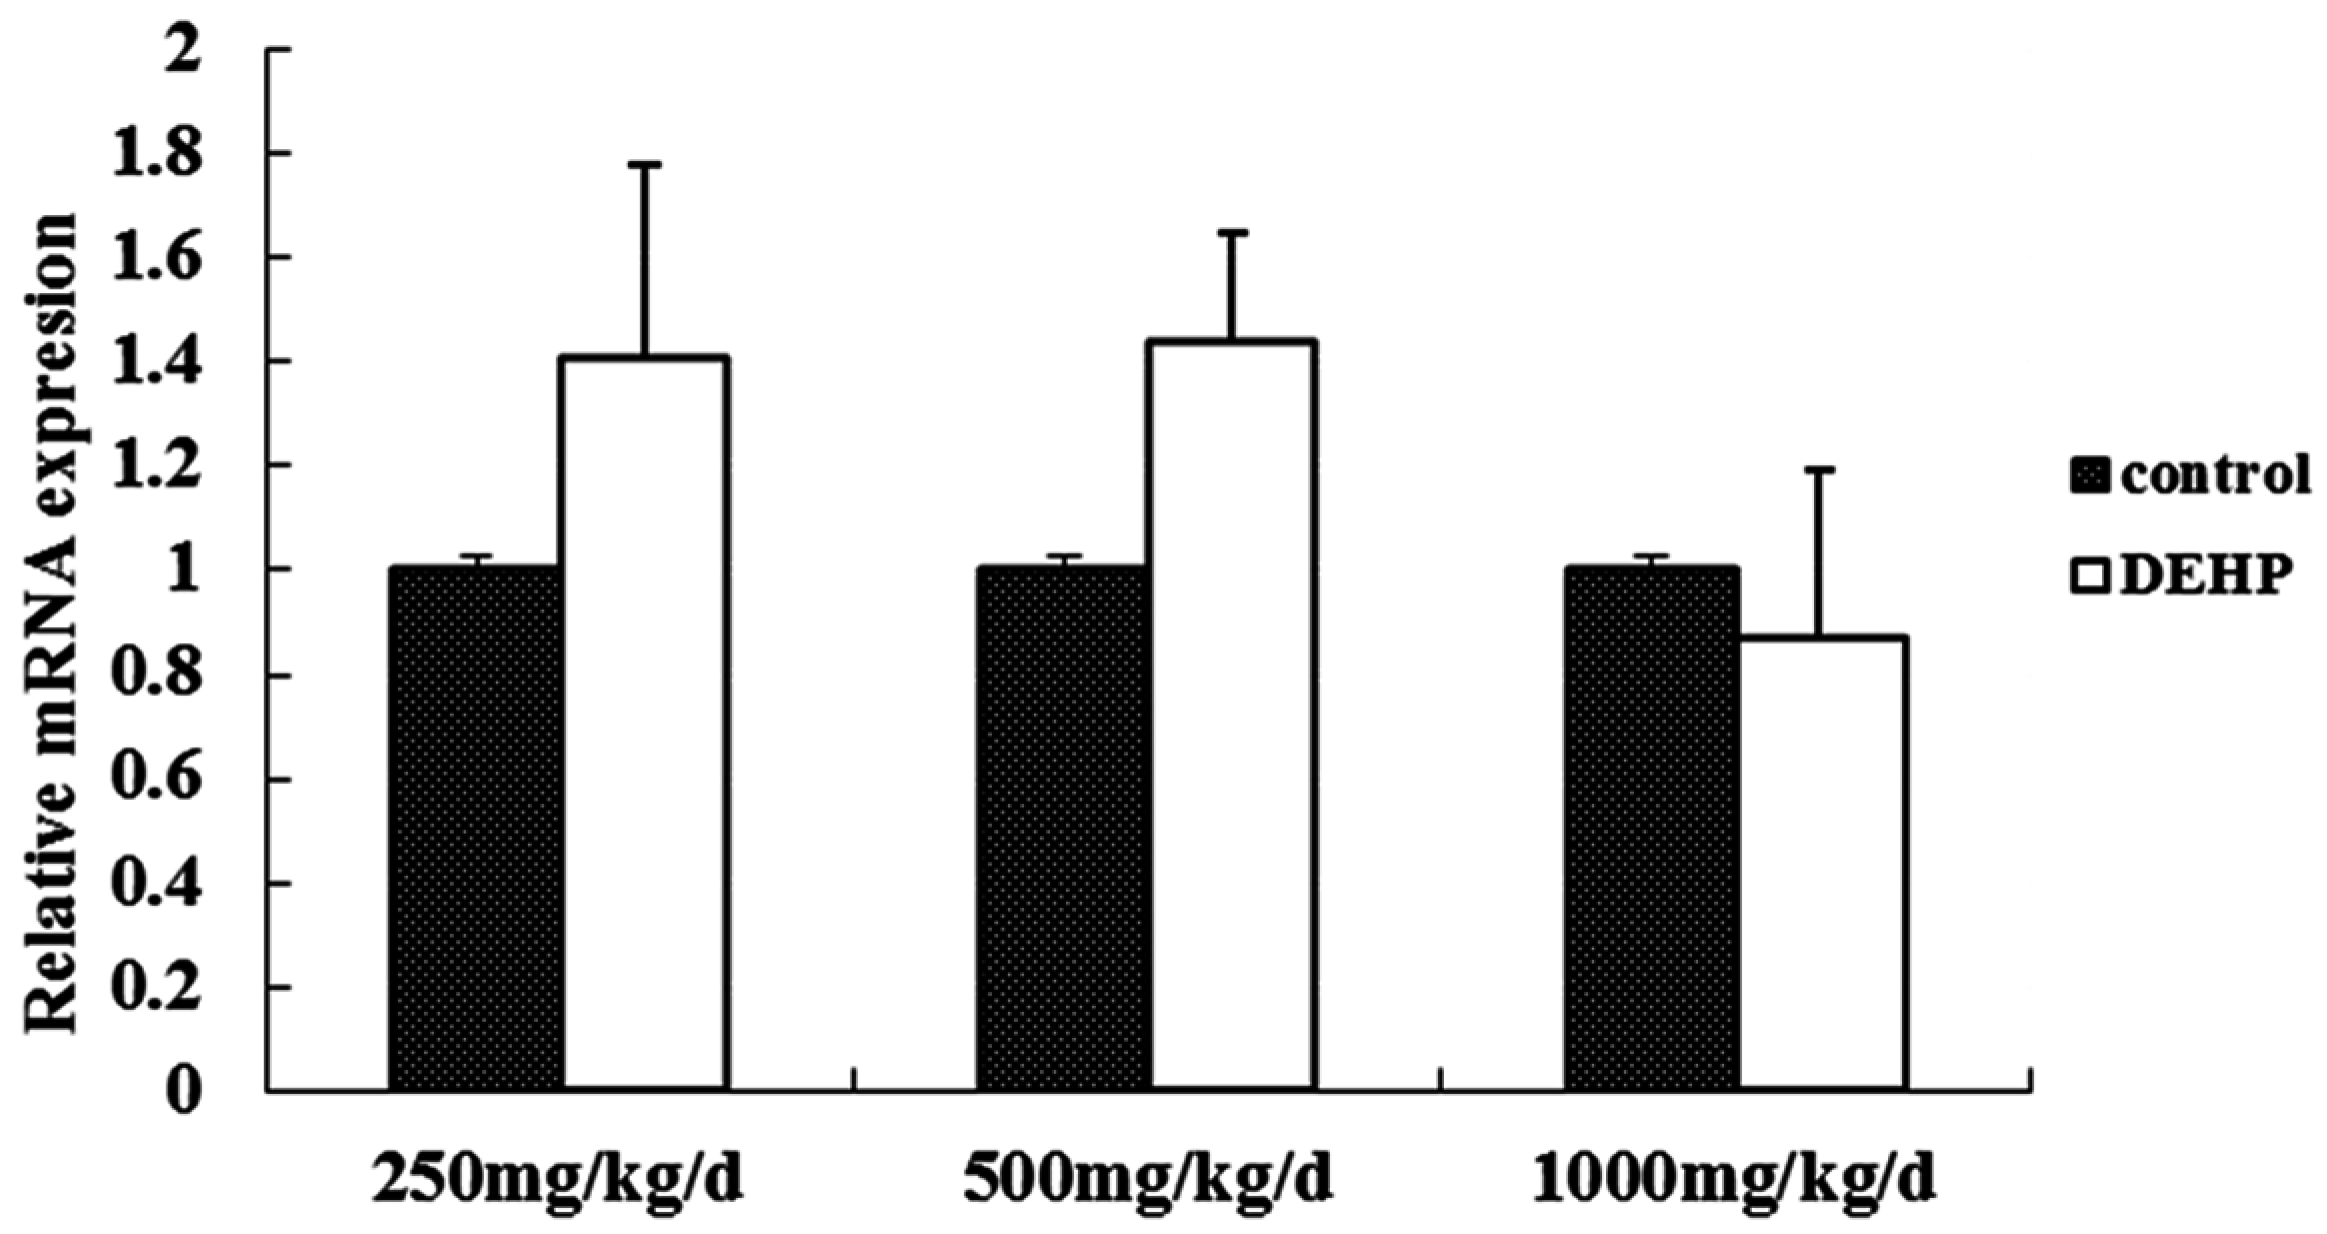 di 2 ethylhexyl phthalate dehp hormone levels in males Indicators focus on three important phthalates: di-2-ethylhexyl phthalate (dehp),  for males exposed to high levels of dehp in the  hormone levels in.